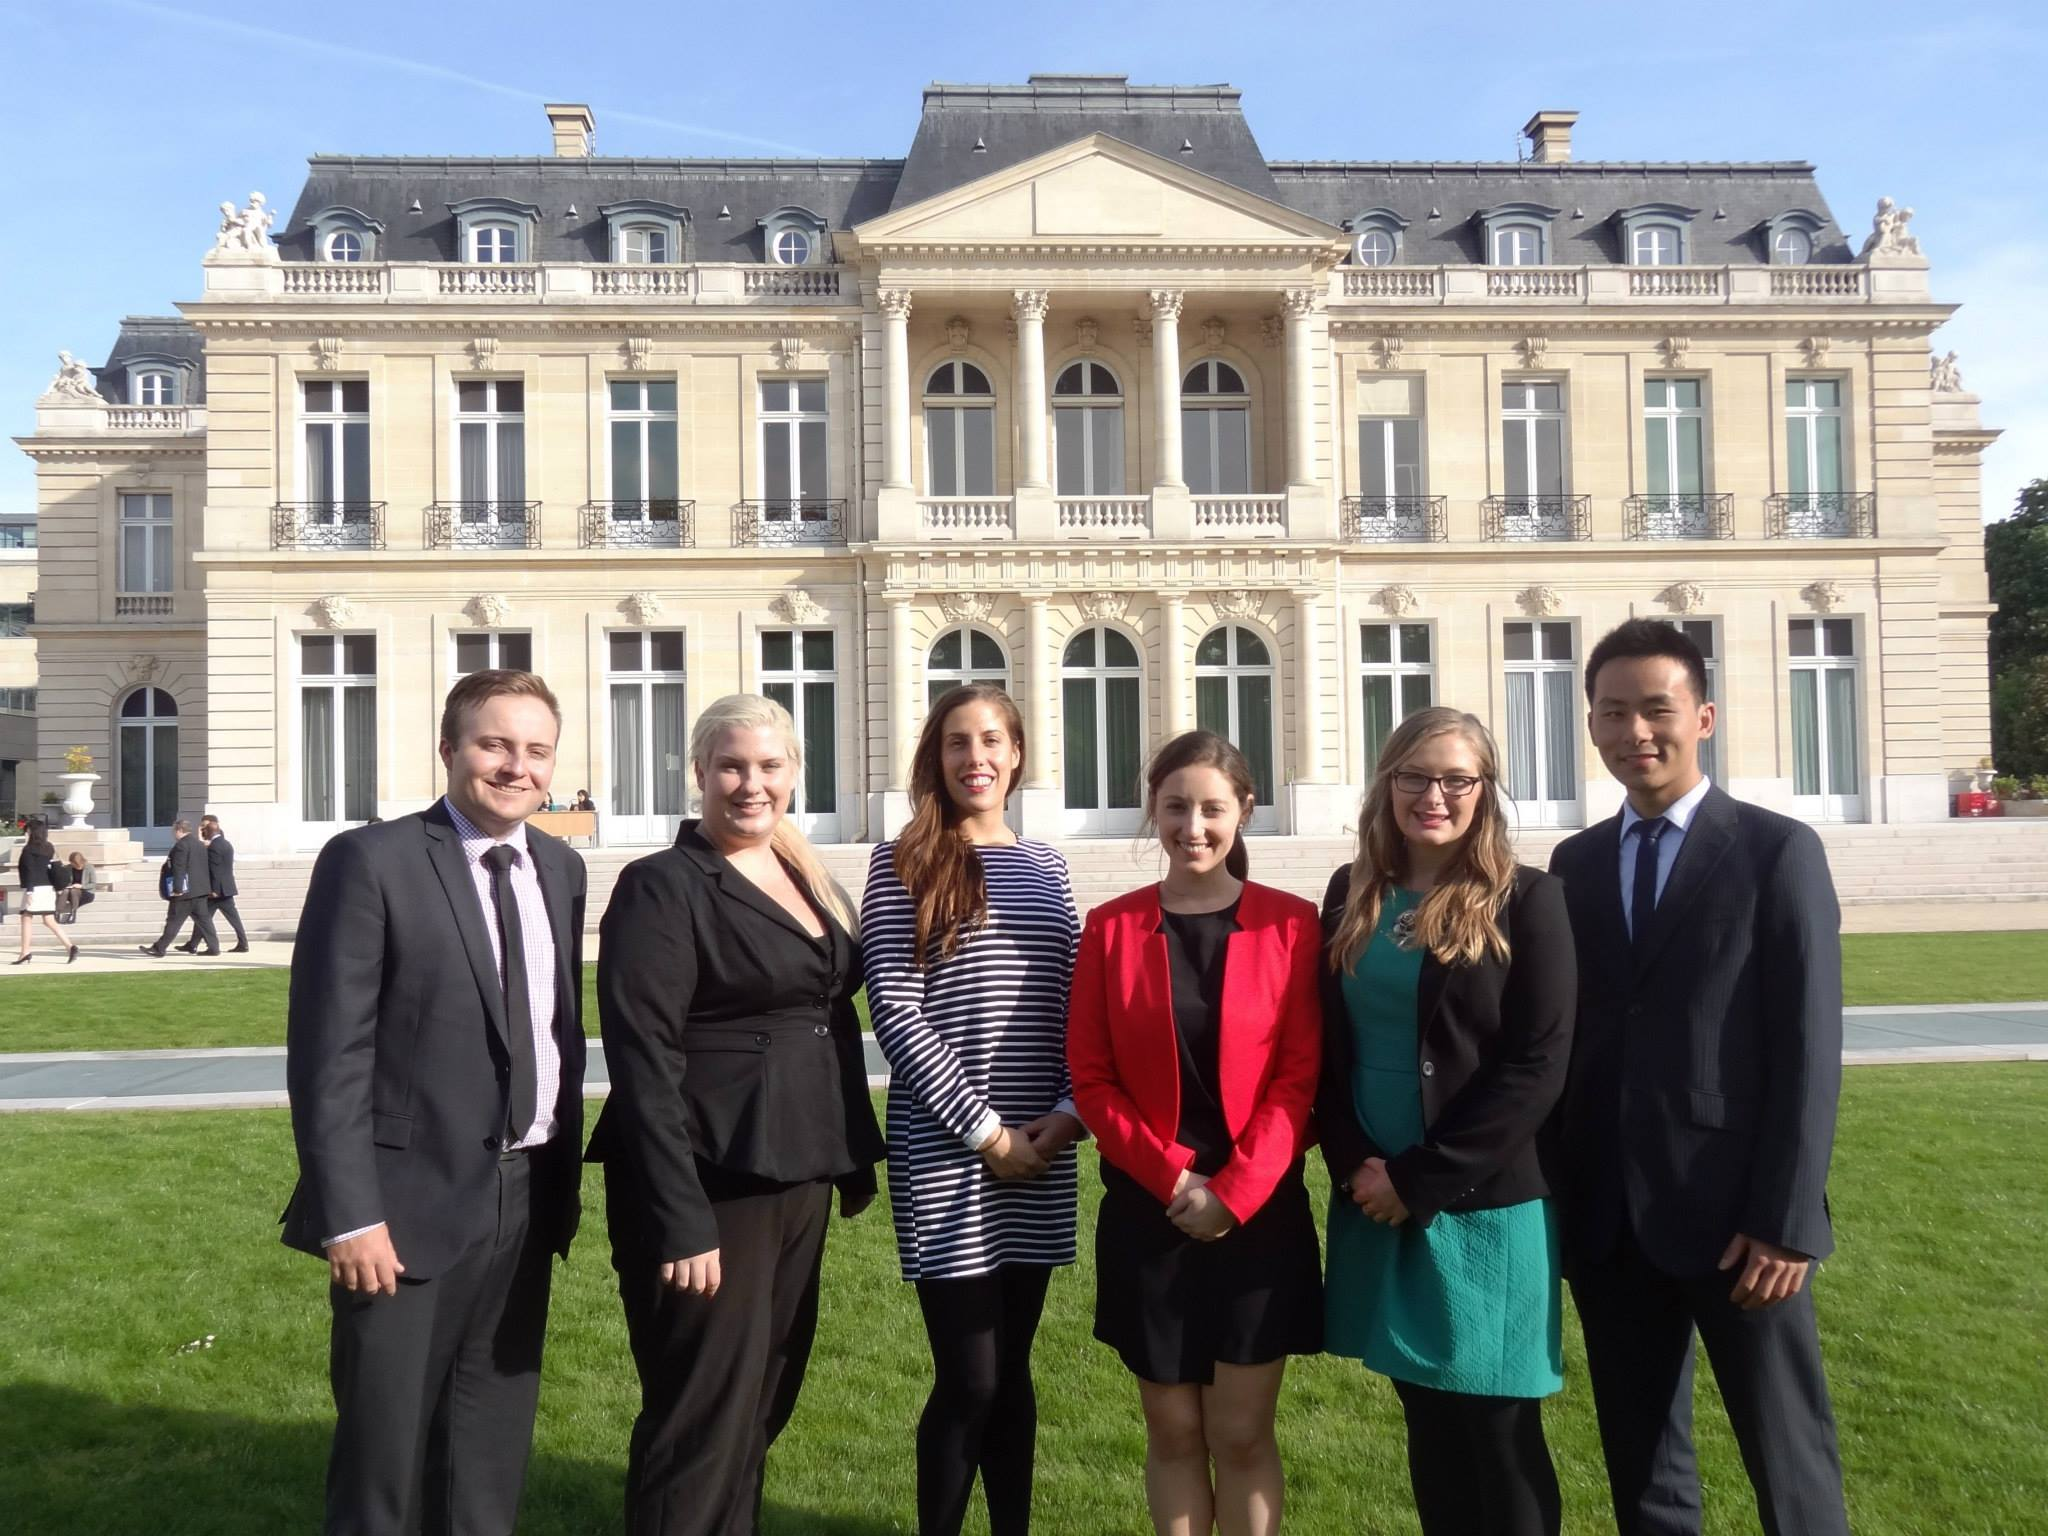 Delegates outside OECD chateau copy.jpg